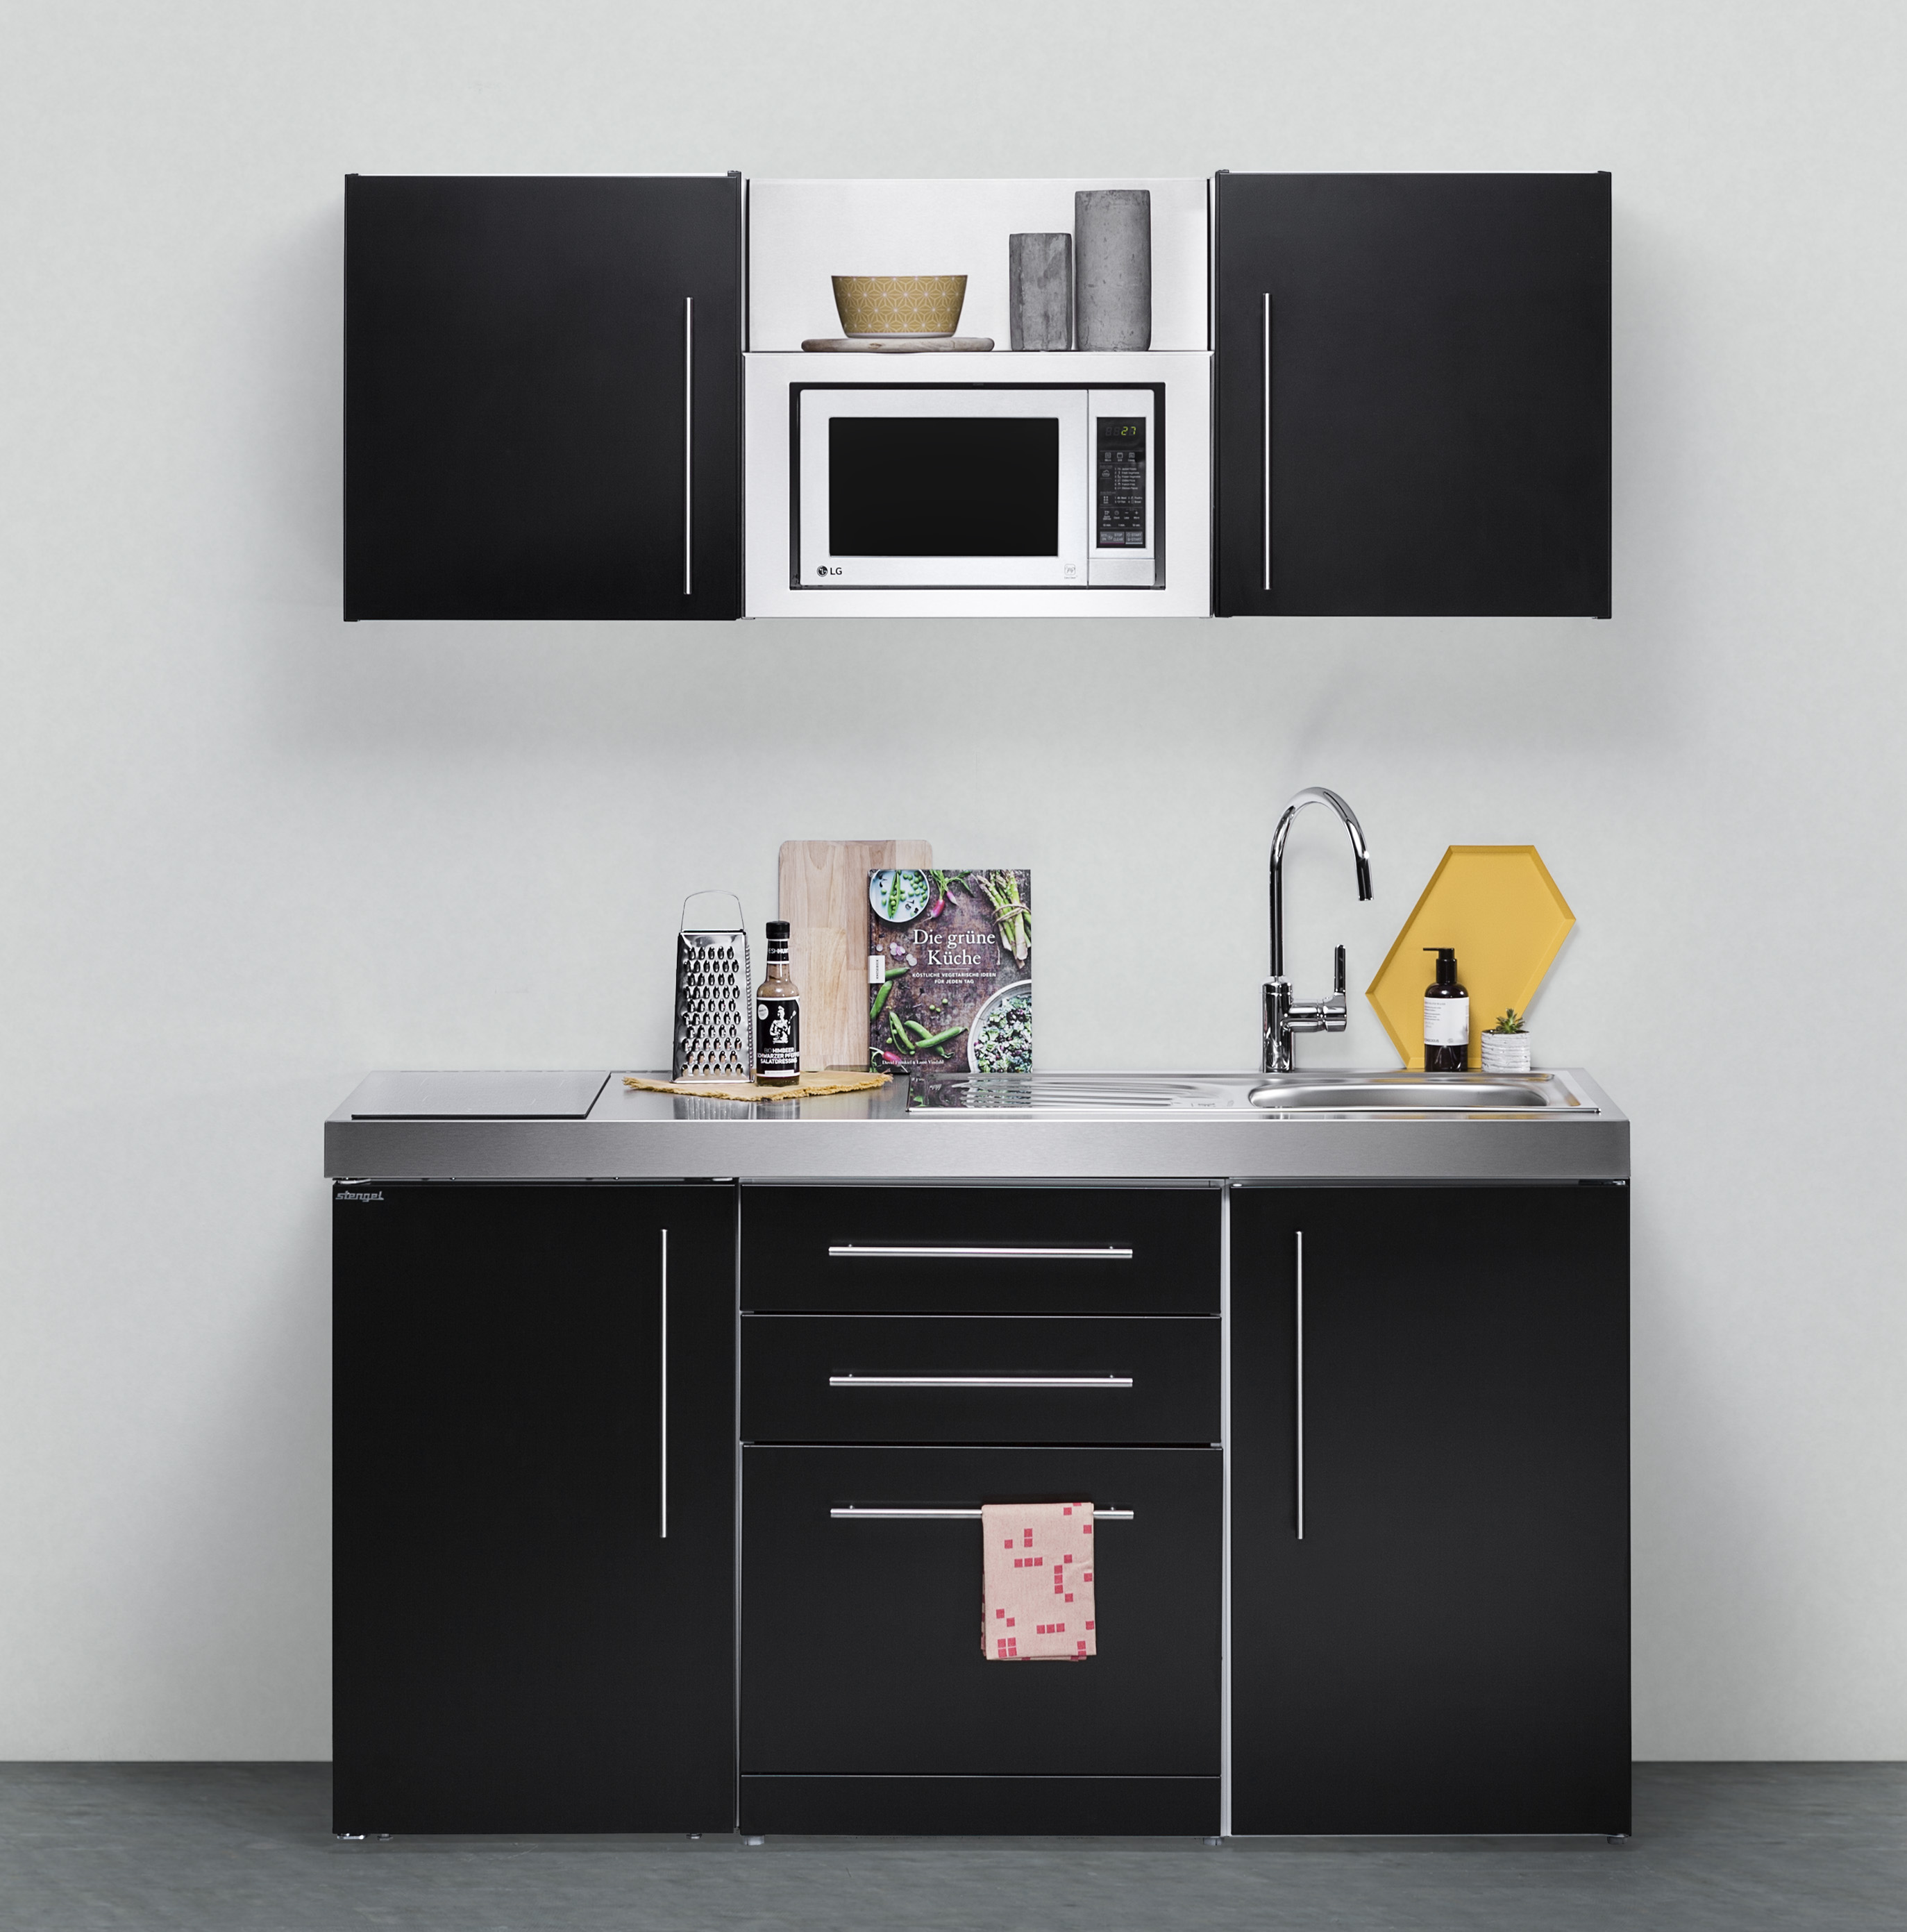 frank zimmerlin freiburg mini k chen pantry k chen. Black Bedroom Furniture Sets. Home Design Ideas